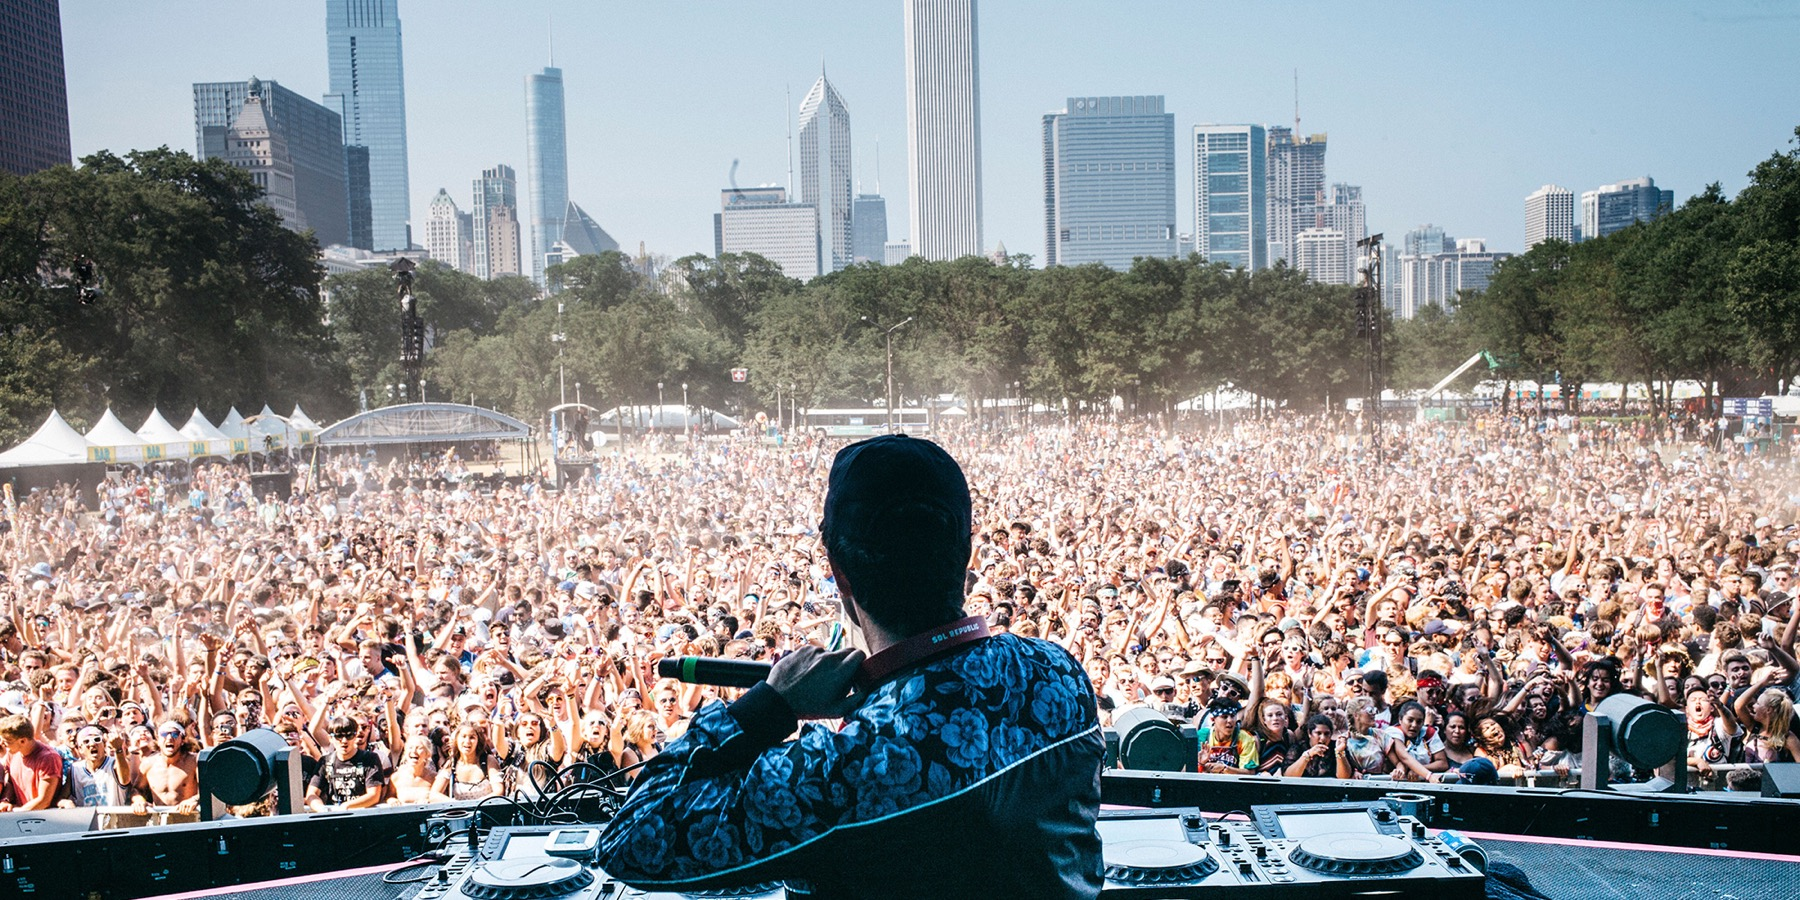 Chicago Events | Find Shows, Festivals, Concerts, Sports Games